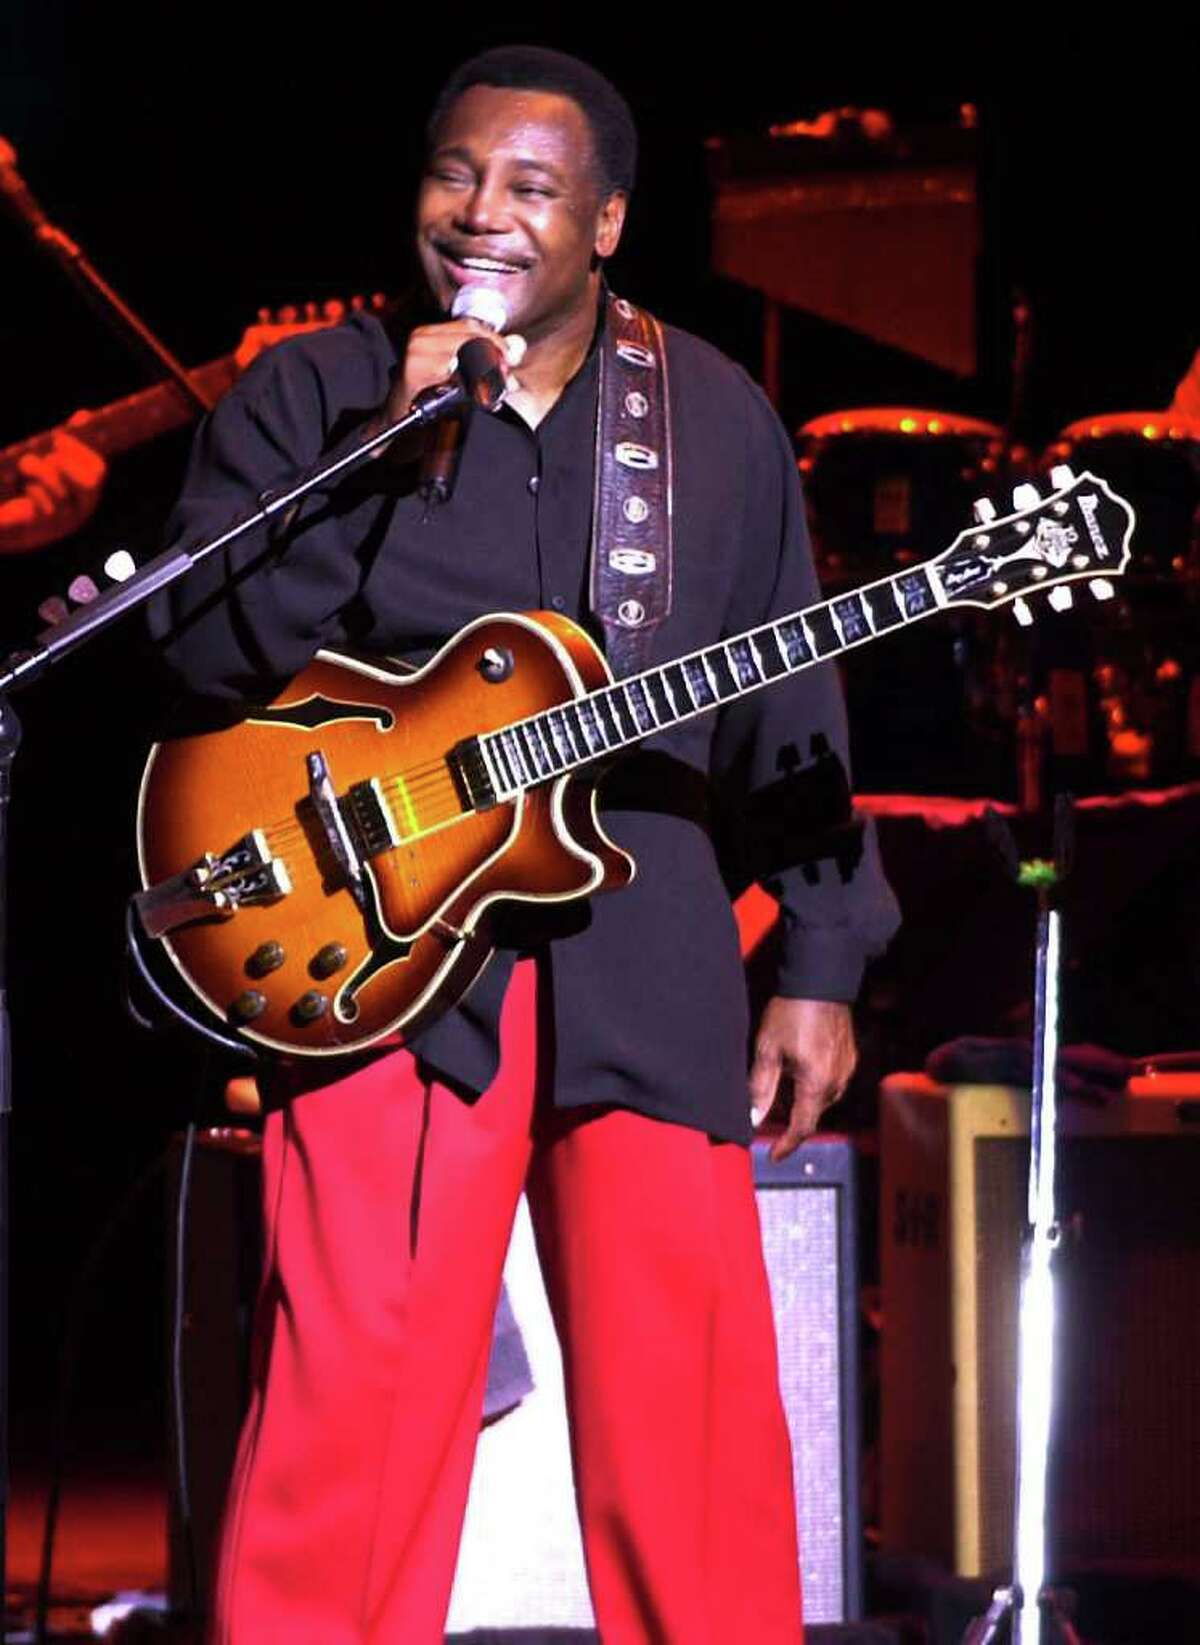 Times Union Photo by James Goolsby July 1, 2001-George Benson, Guitar Great ! Performs at the Freihoffer Jazz Festival at SPAC. Saratoga Springs , N.Y.